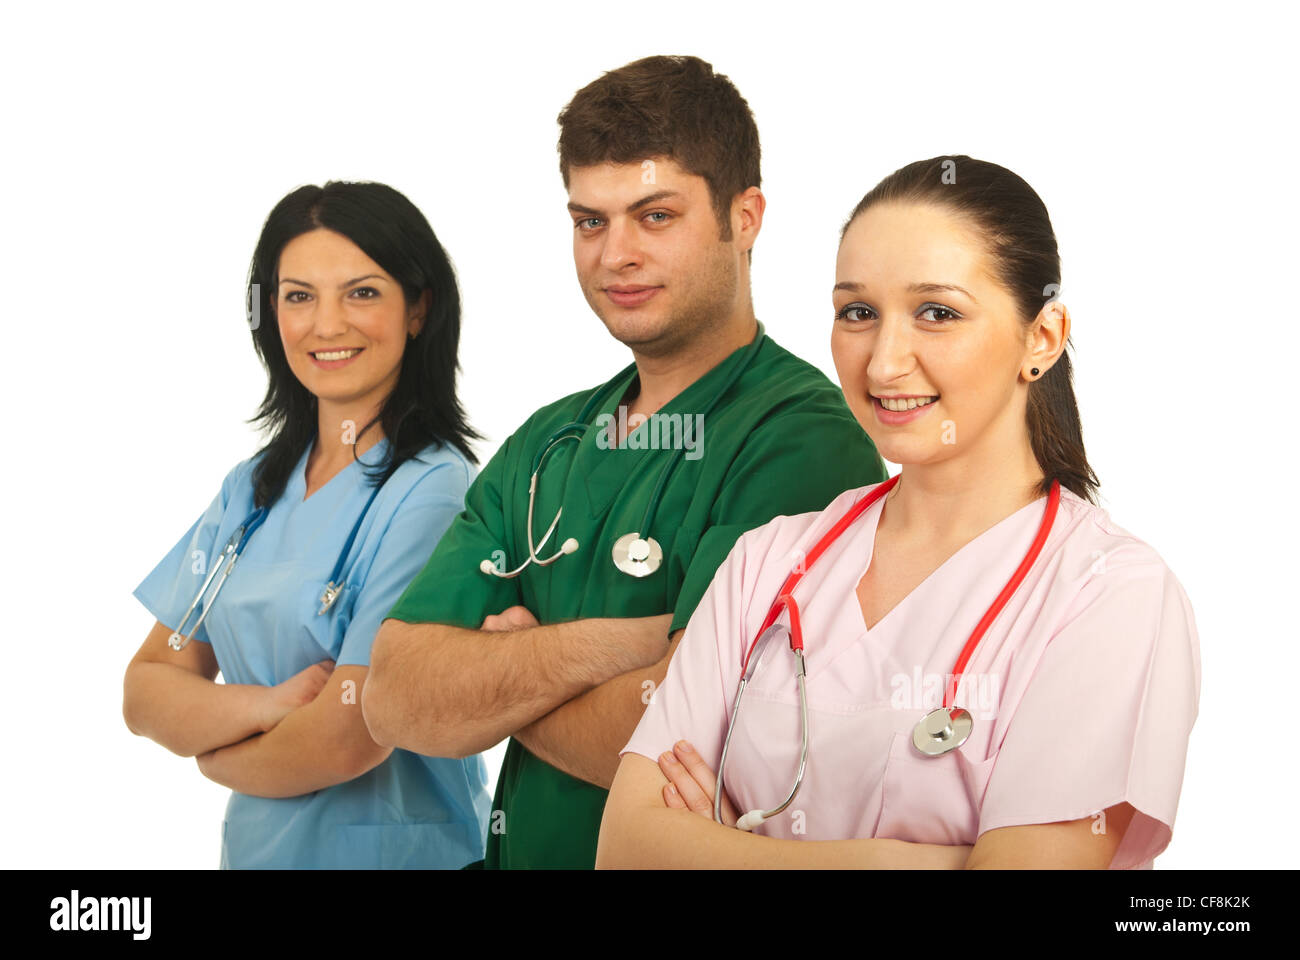 Happy three hospital workers standing in a line with arms folded isolated on white background - Stock Image